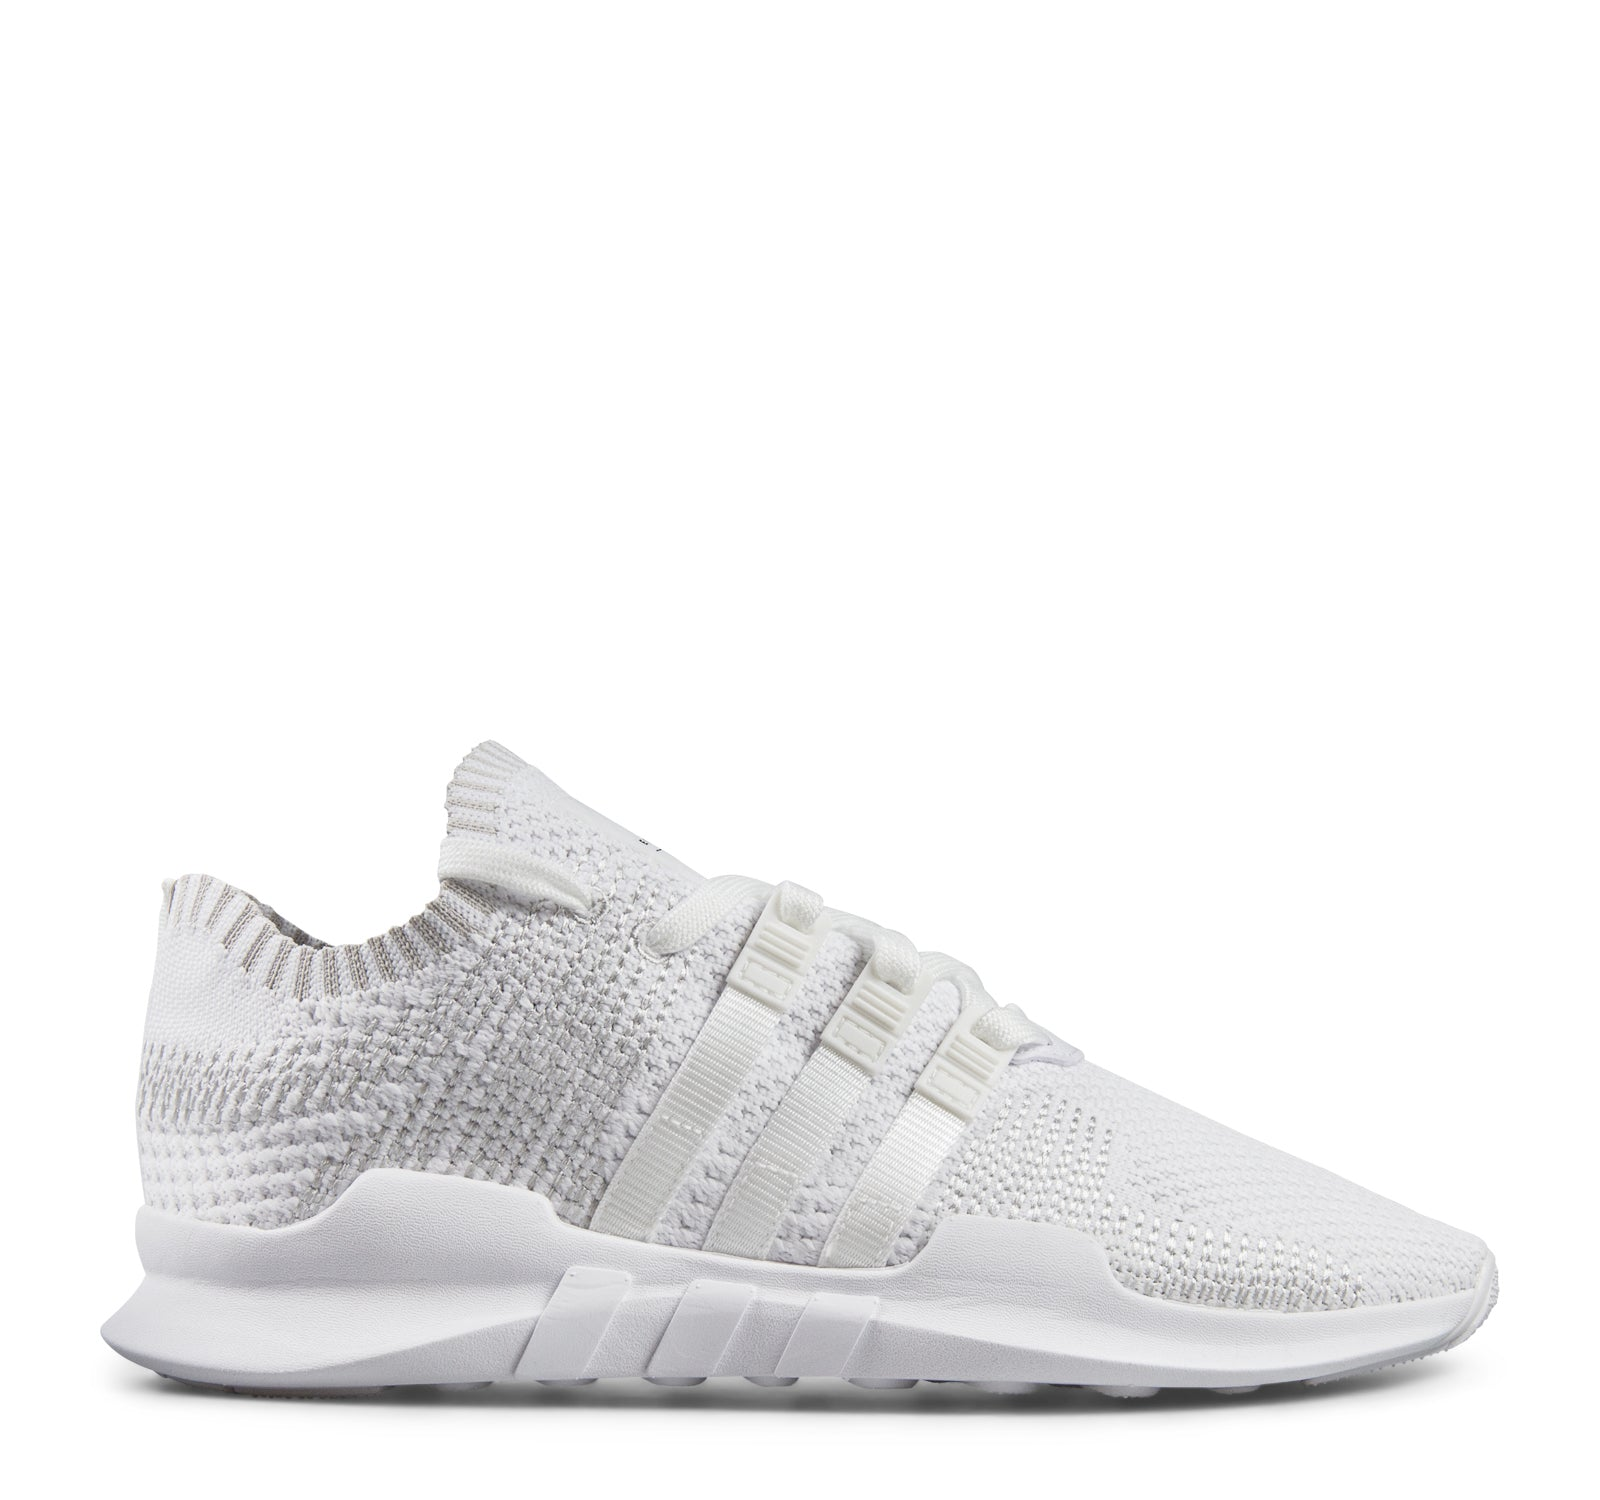 low priced 32bd9 e9c20 Adidas EQT Support ADV PK BY9391 Men's Sneaker in White – On ...